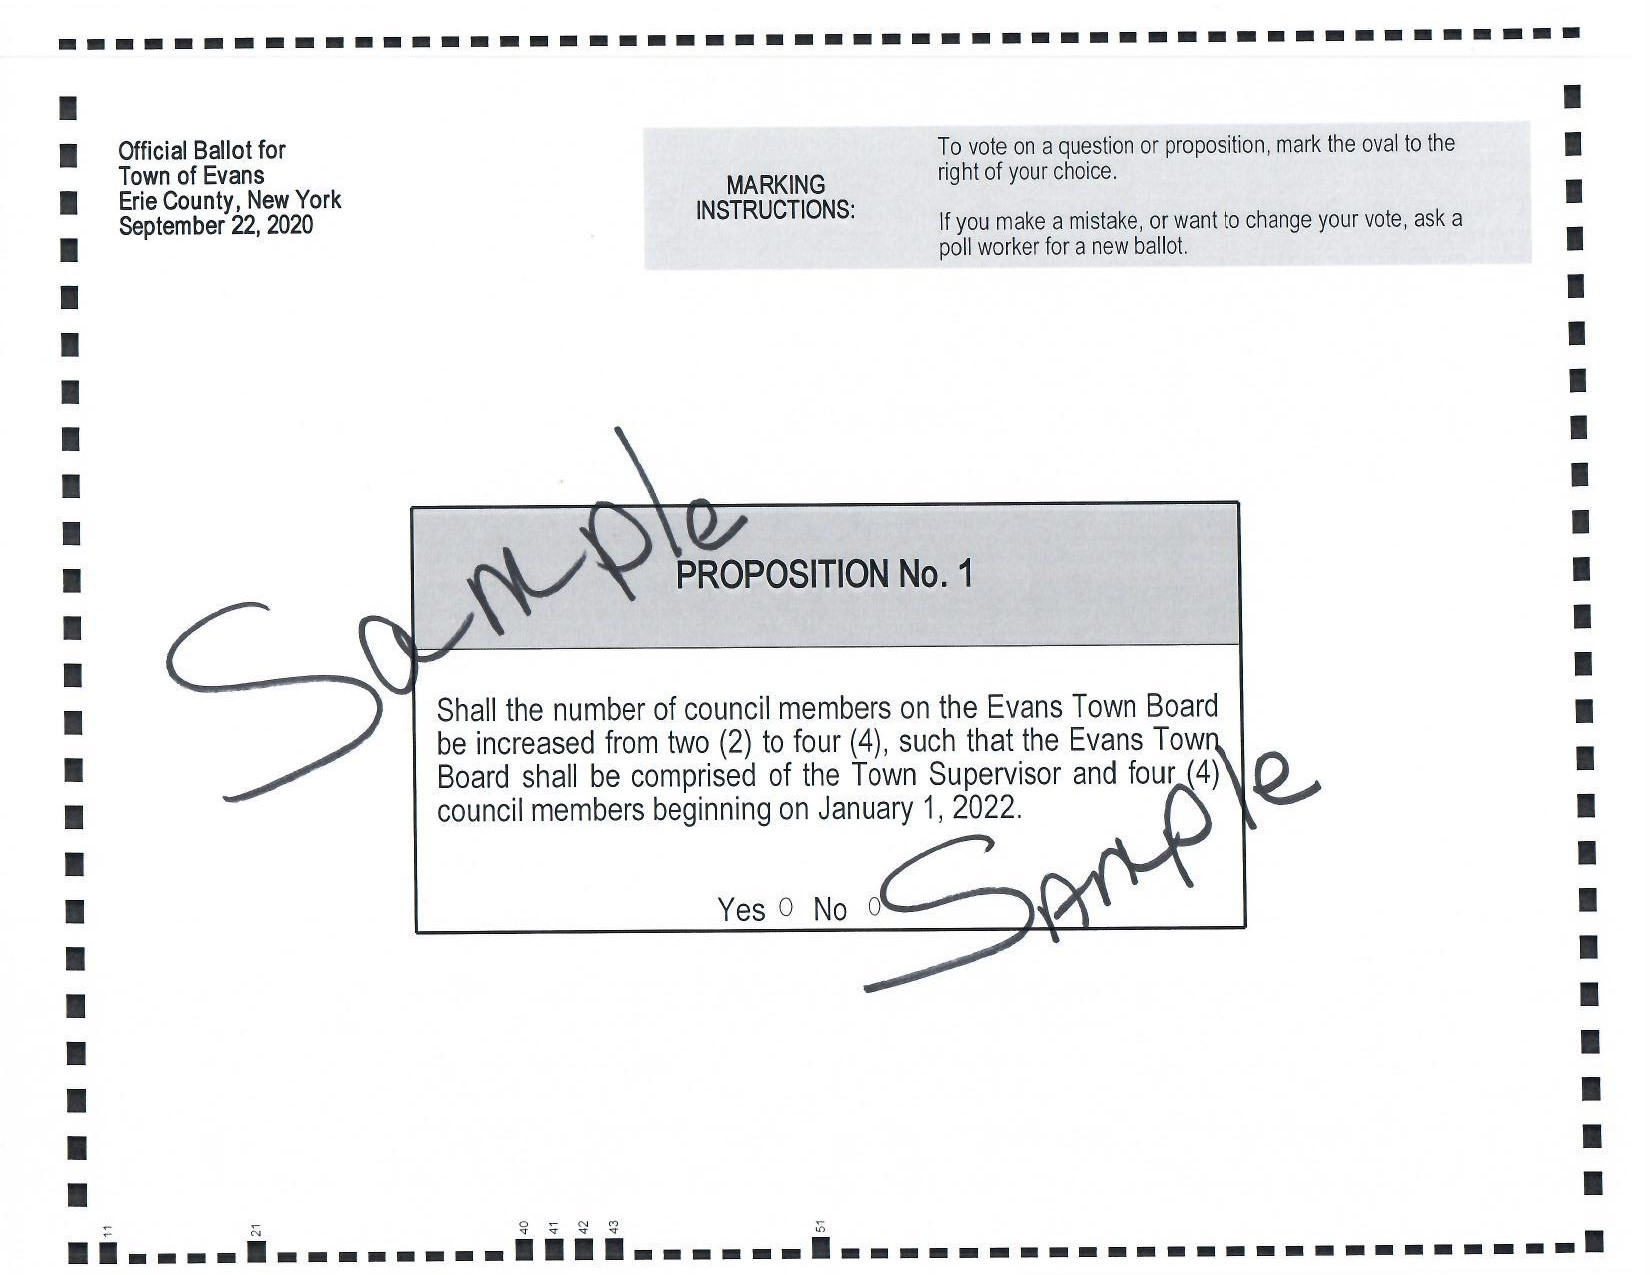 Sample Ballot 2020 09 22